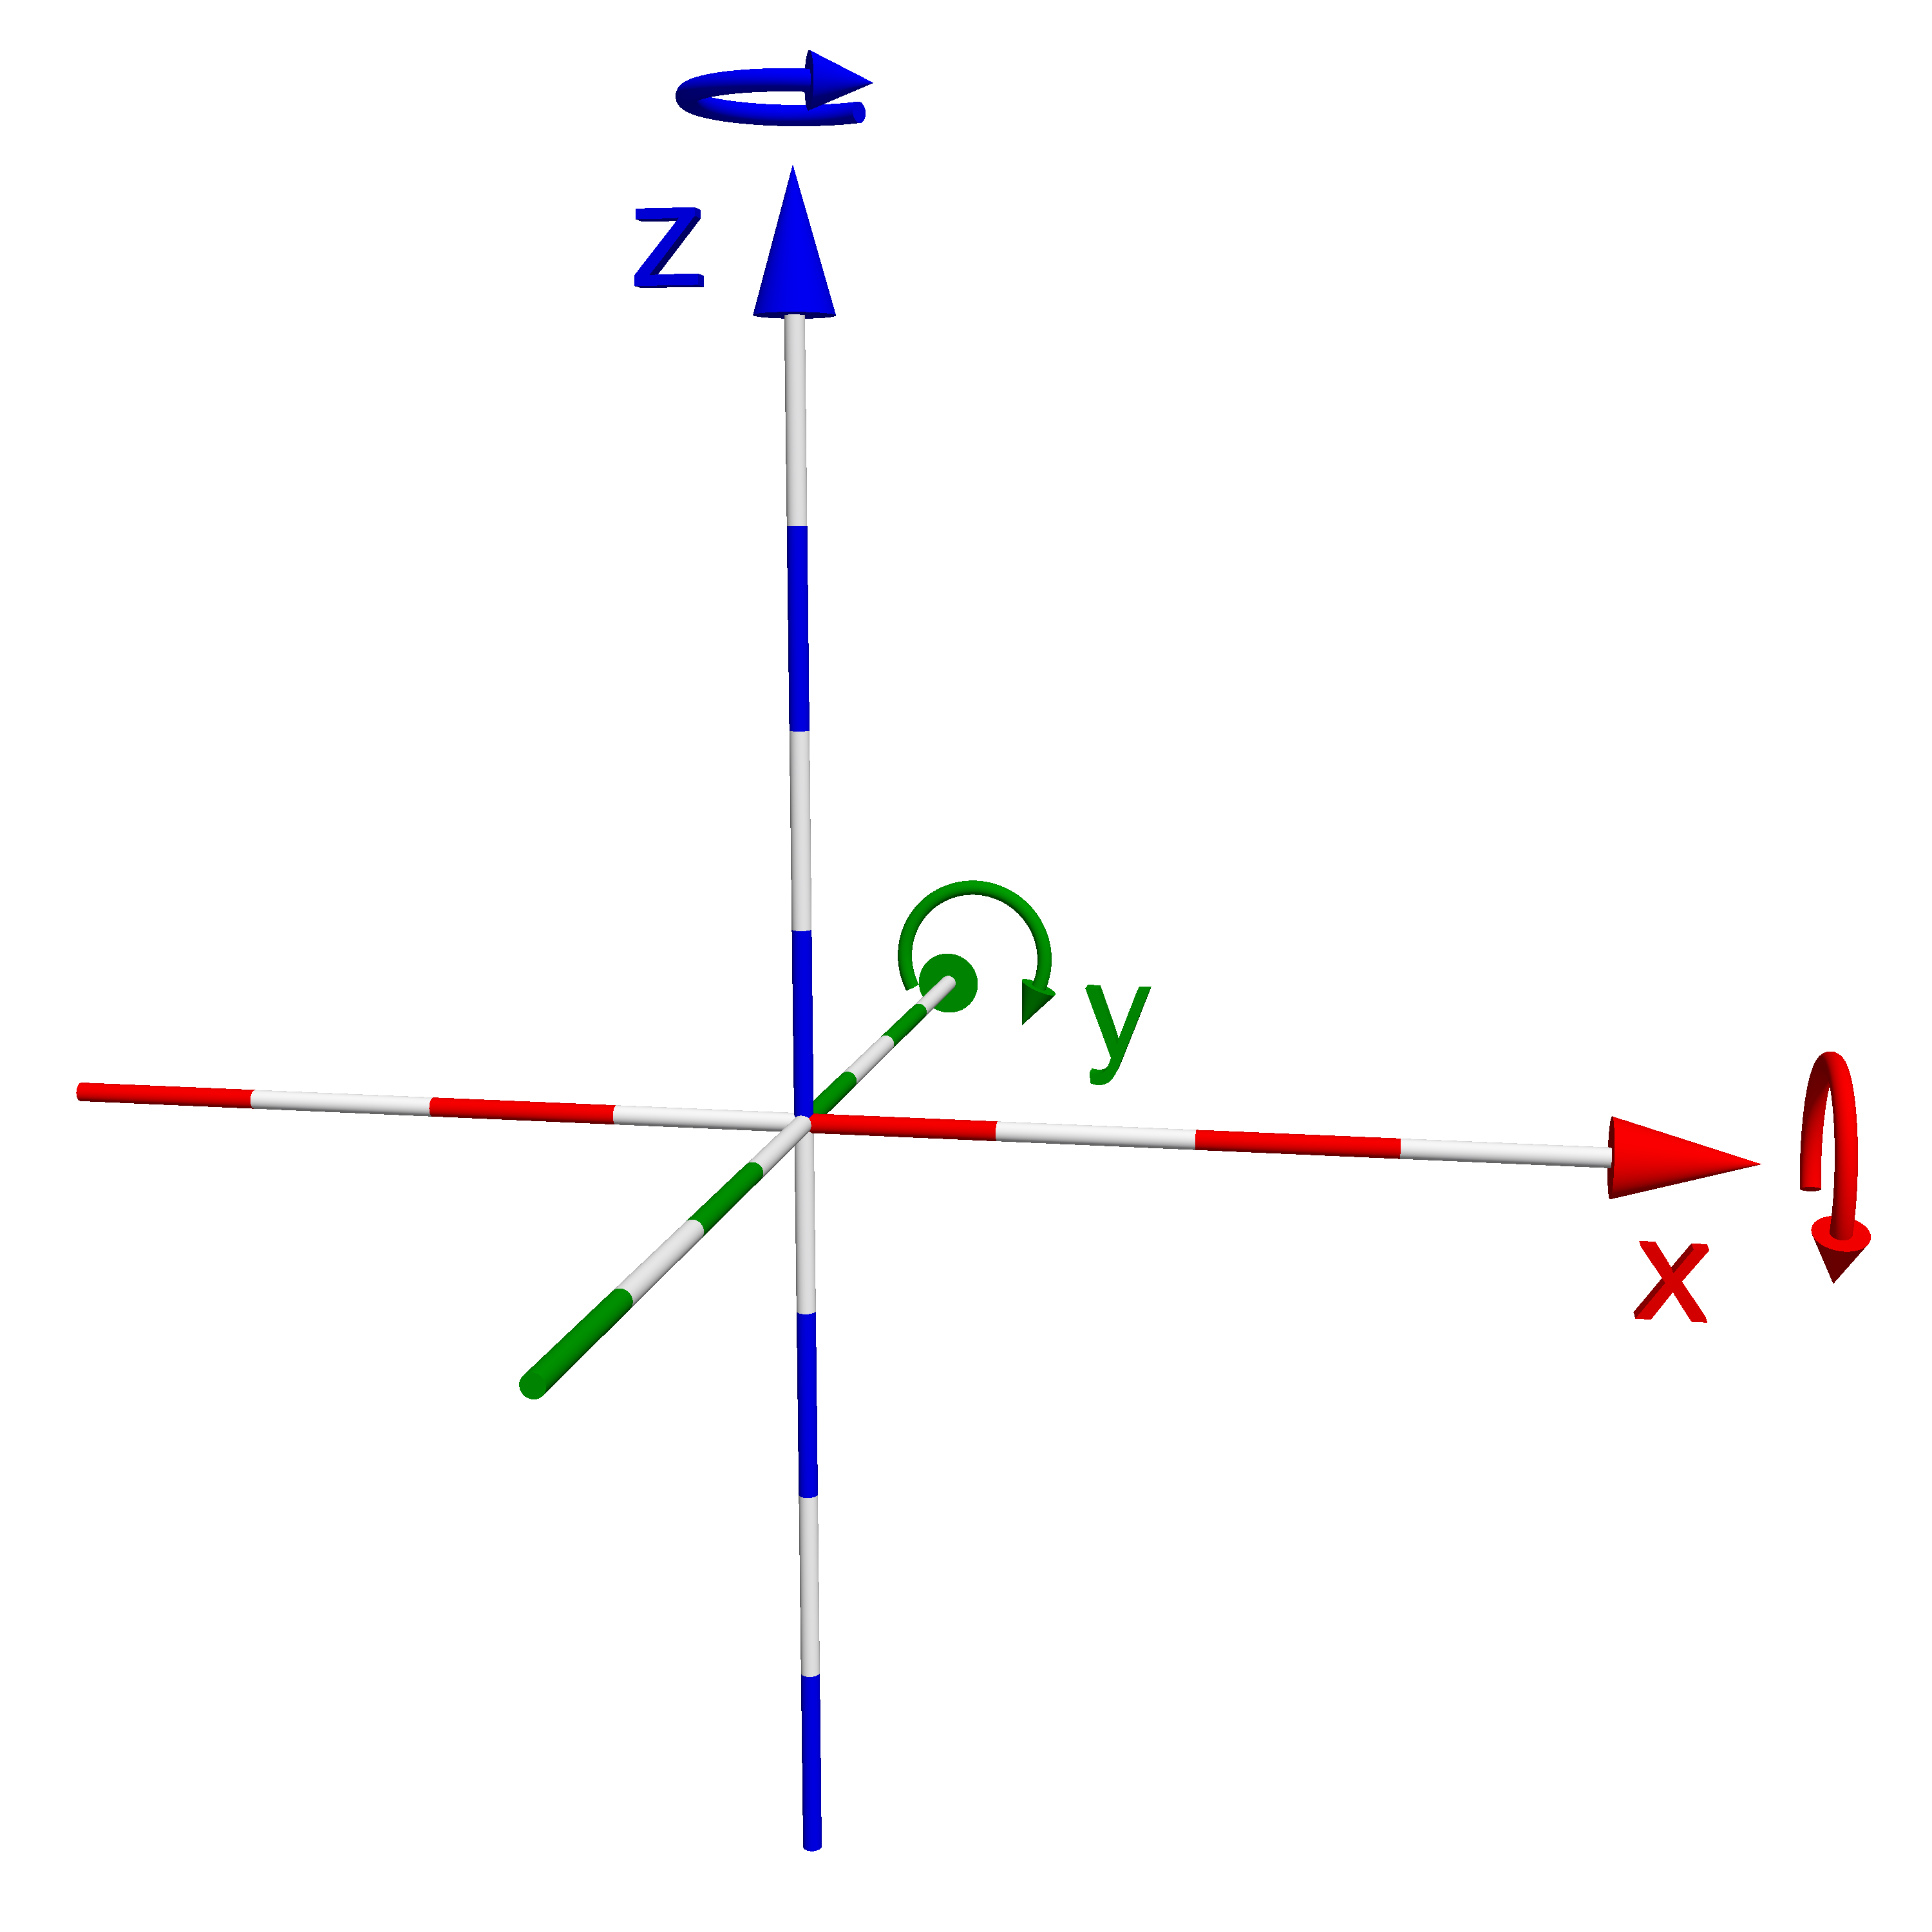 What is a coordinate system